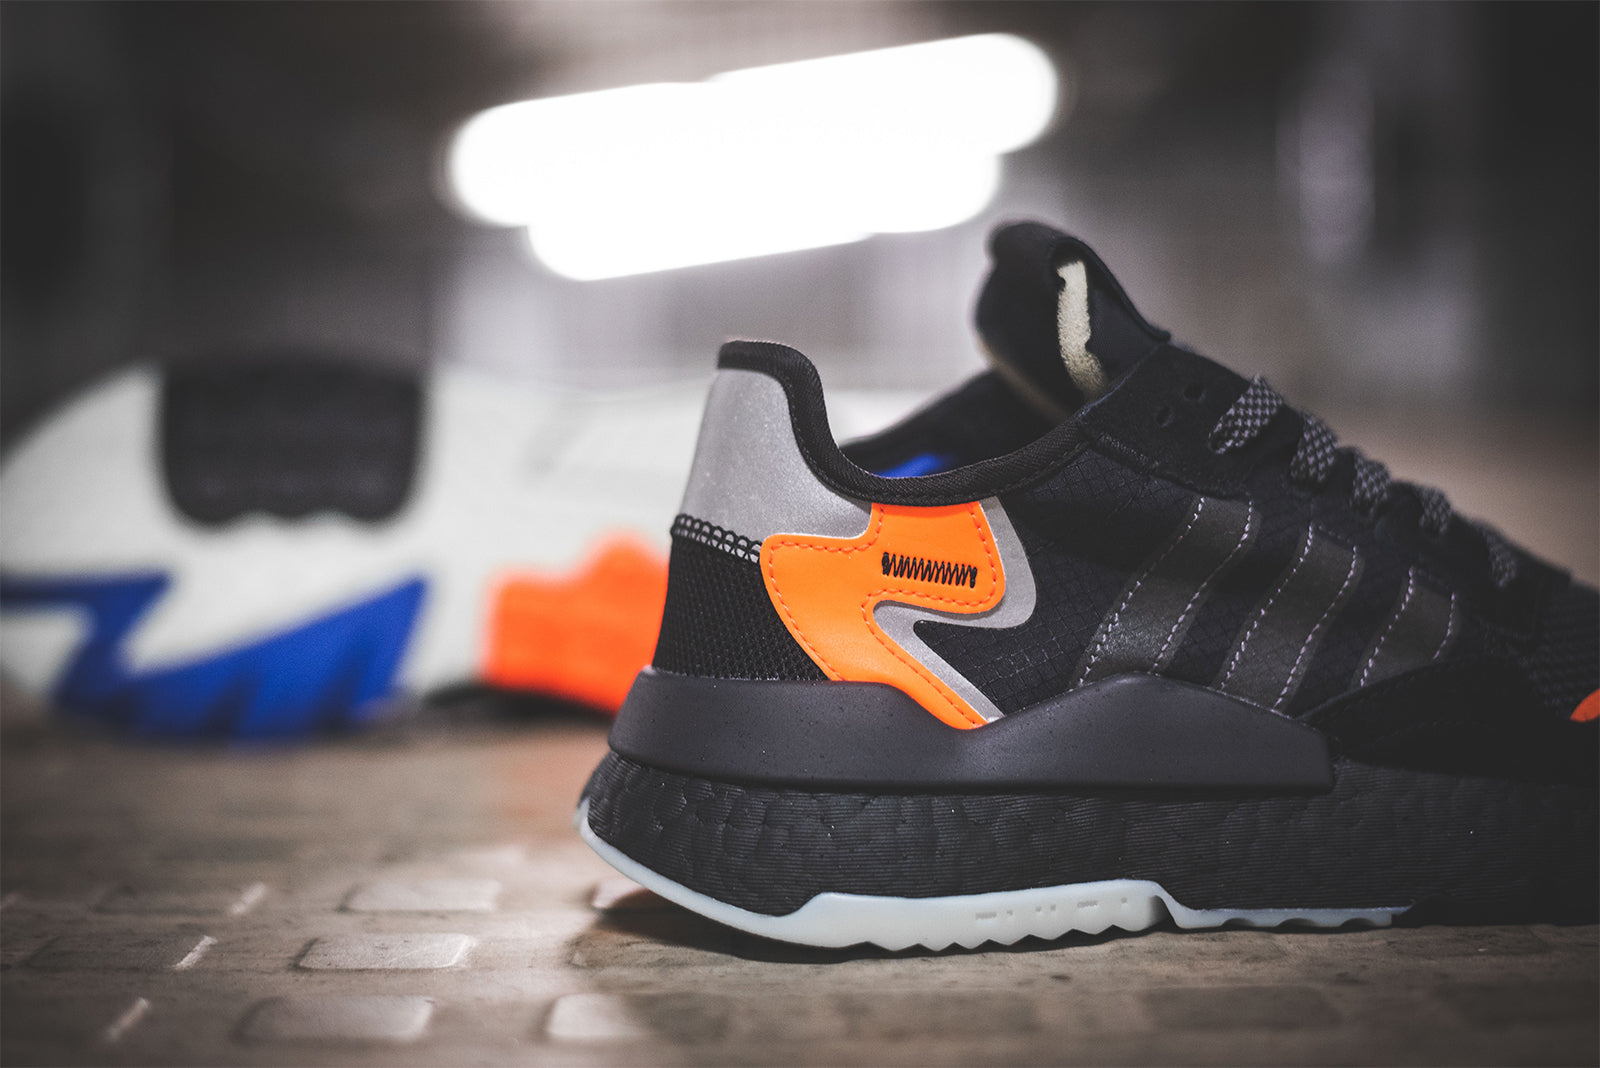 new arrival 416e5 078aa adidas Nite Jogger CG7088 Core BlackCarbonActive Blue Price £119.00.  Launch January 12th